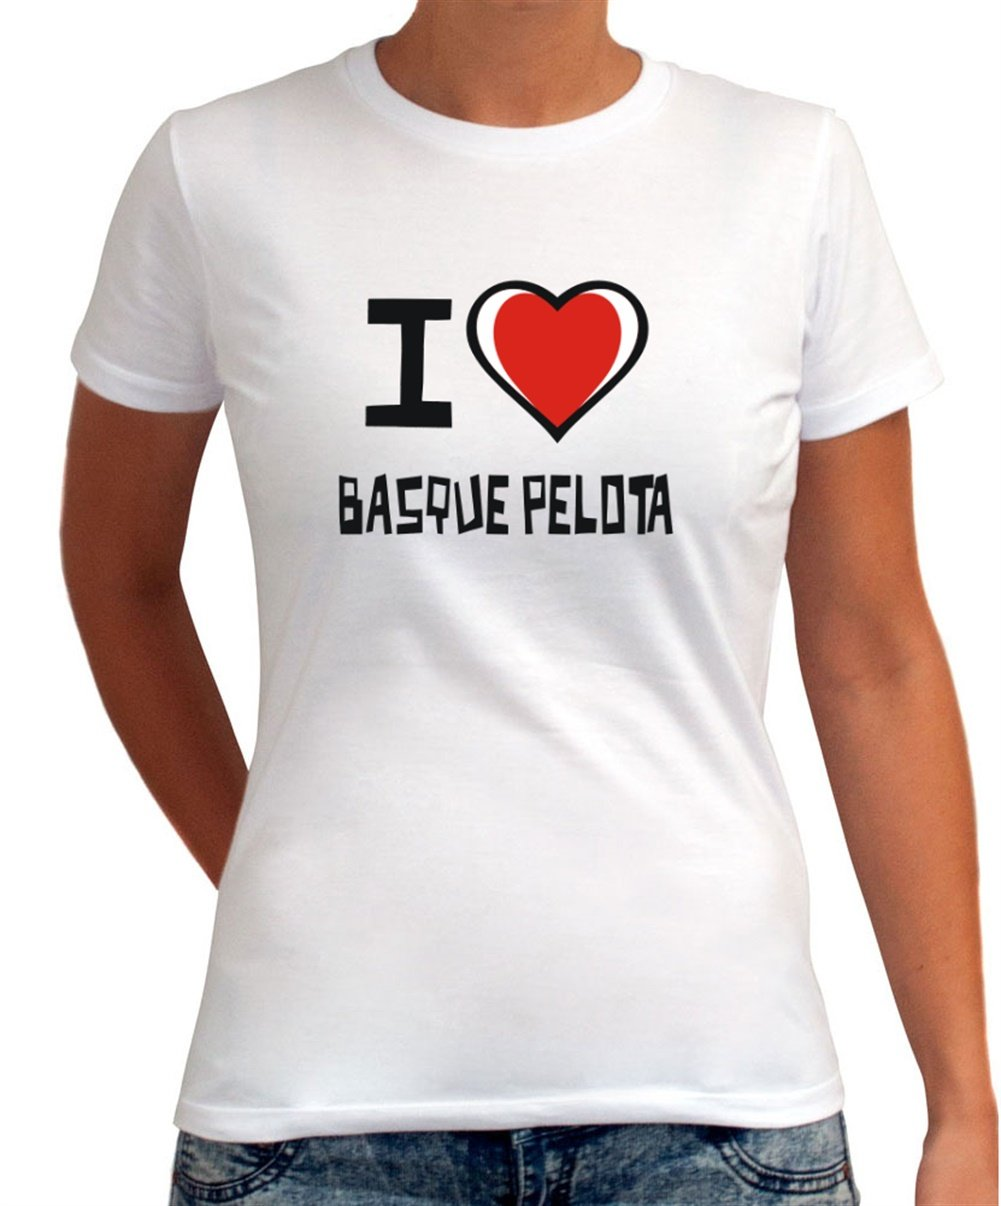 I Love Basque pelota vasca señora T-Shirt blanco large: Amazon.es ...